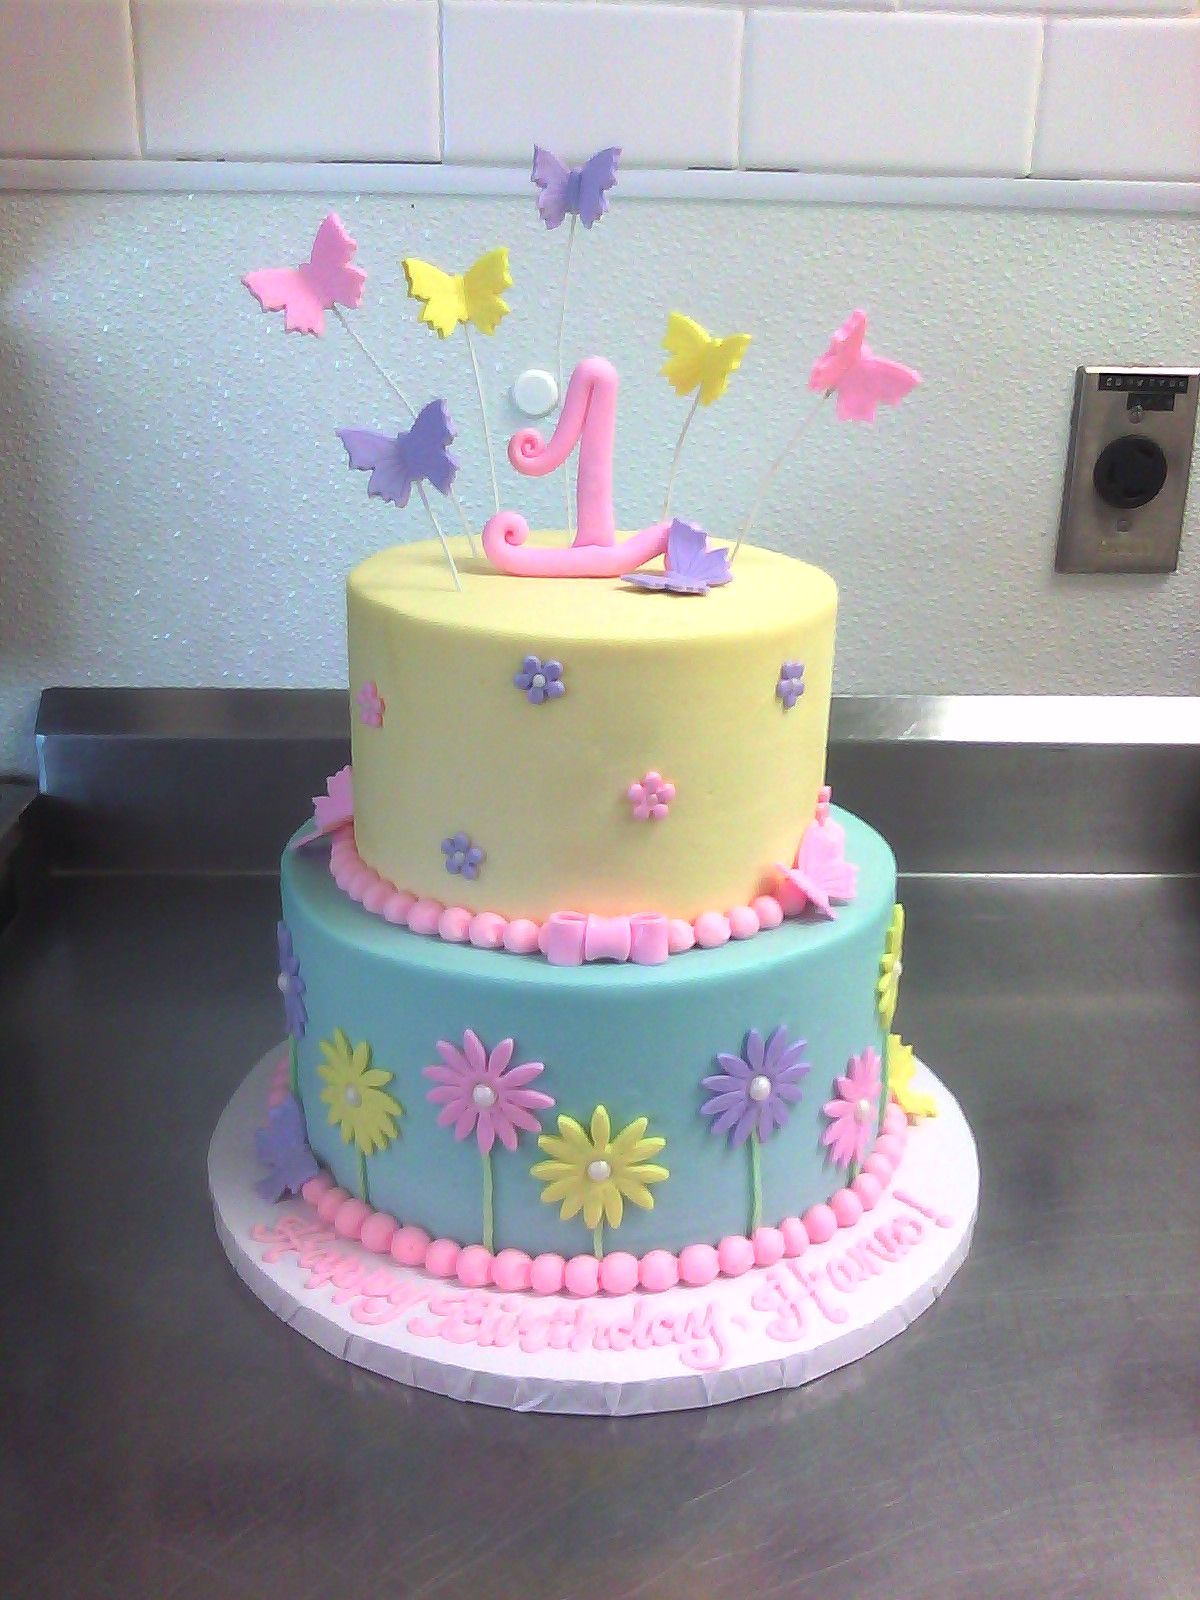 1st Birthday Cake with Butterflies & Flowers 1st